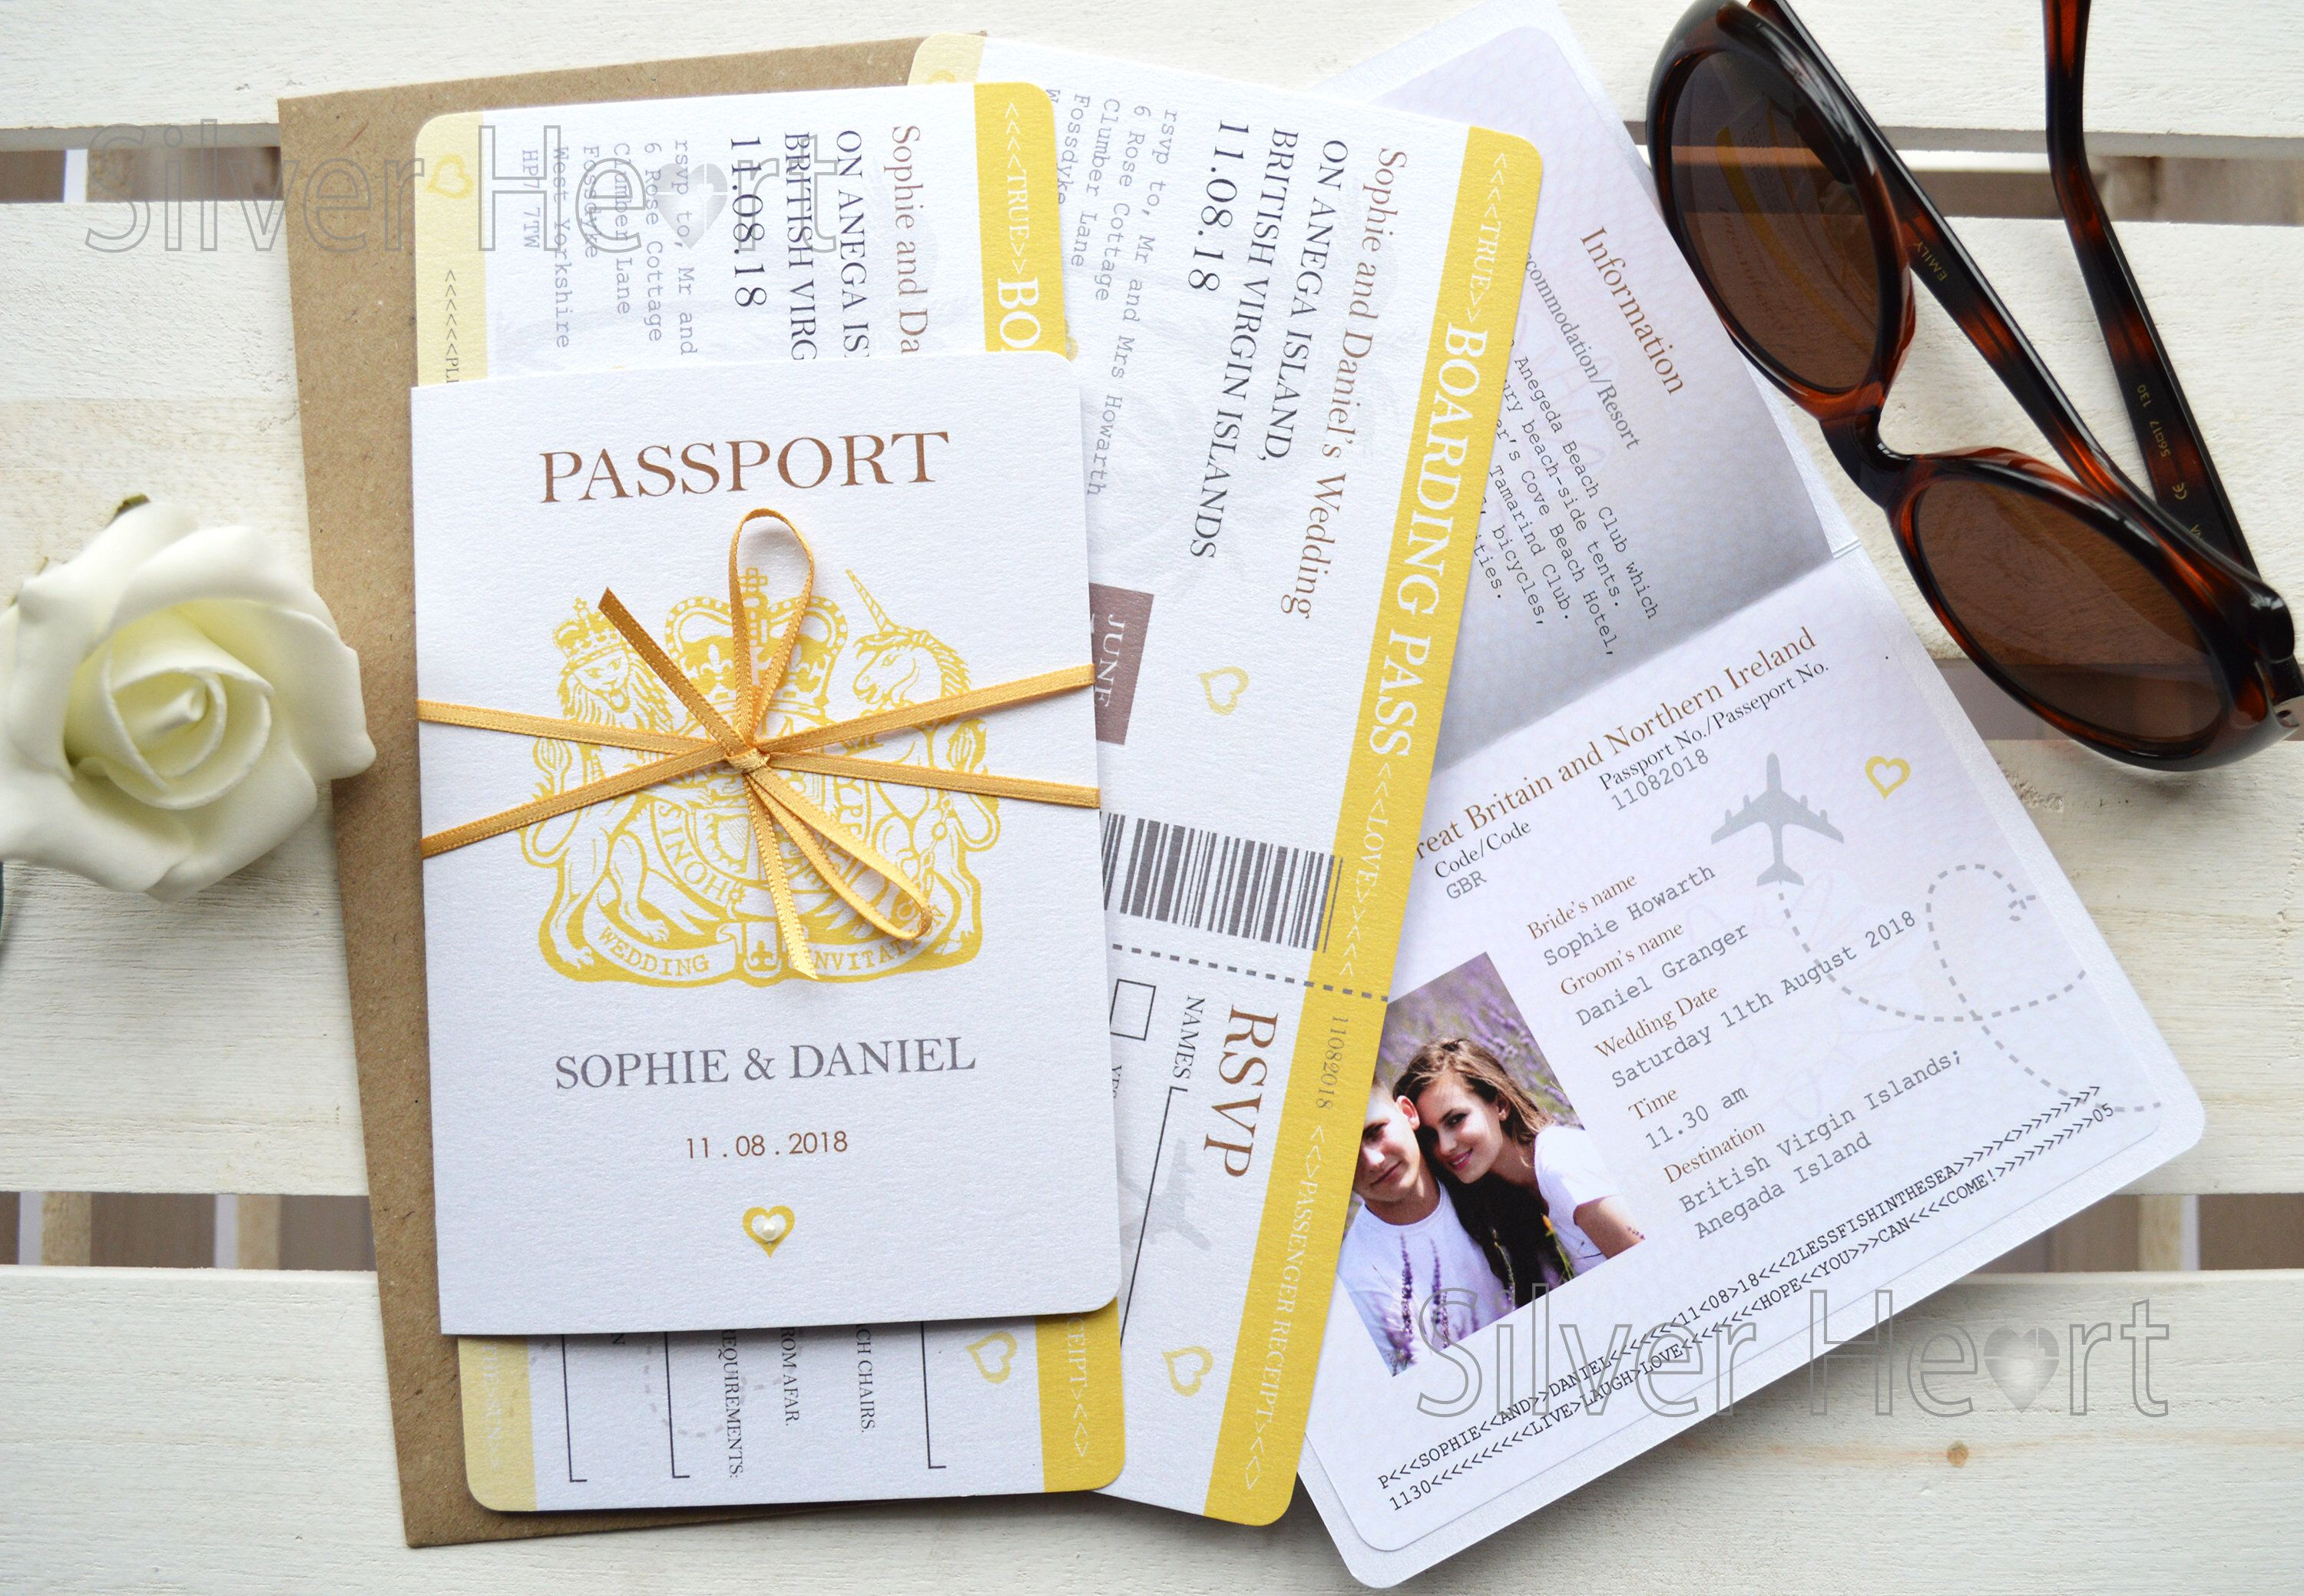 Passport Wedding Invitations with DIY Bow and Boarding Pass RSVP ...